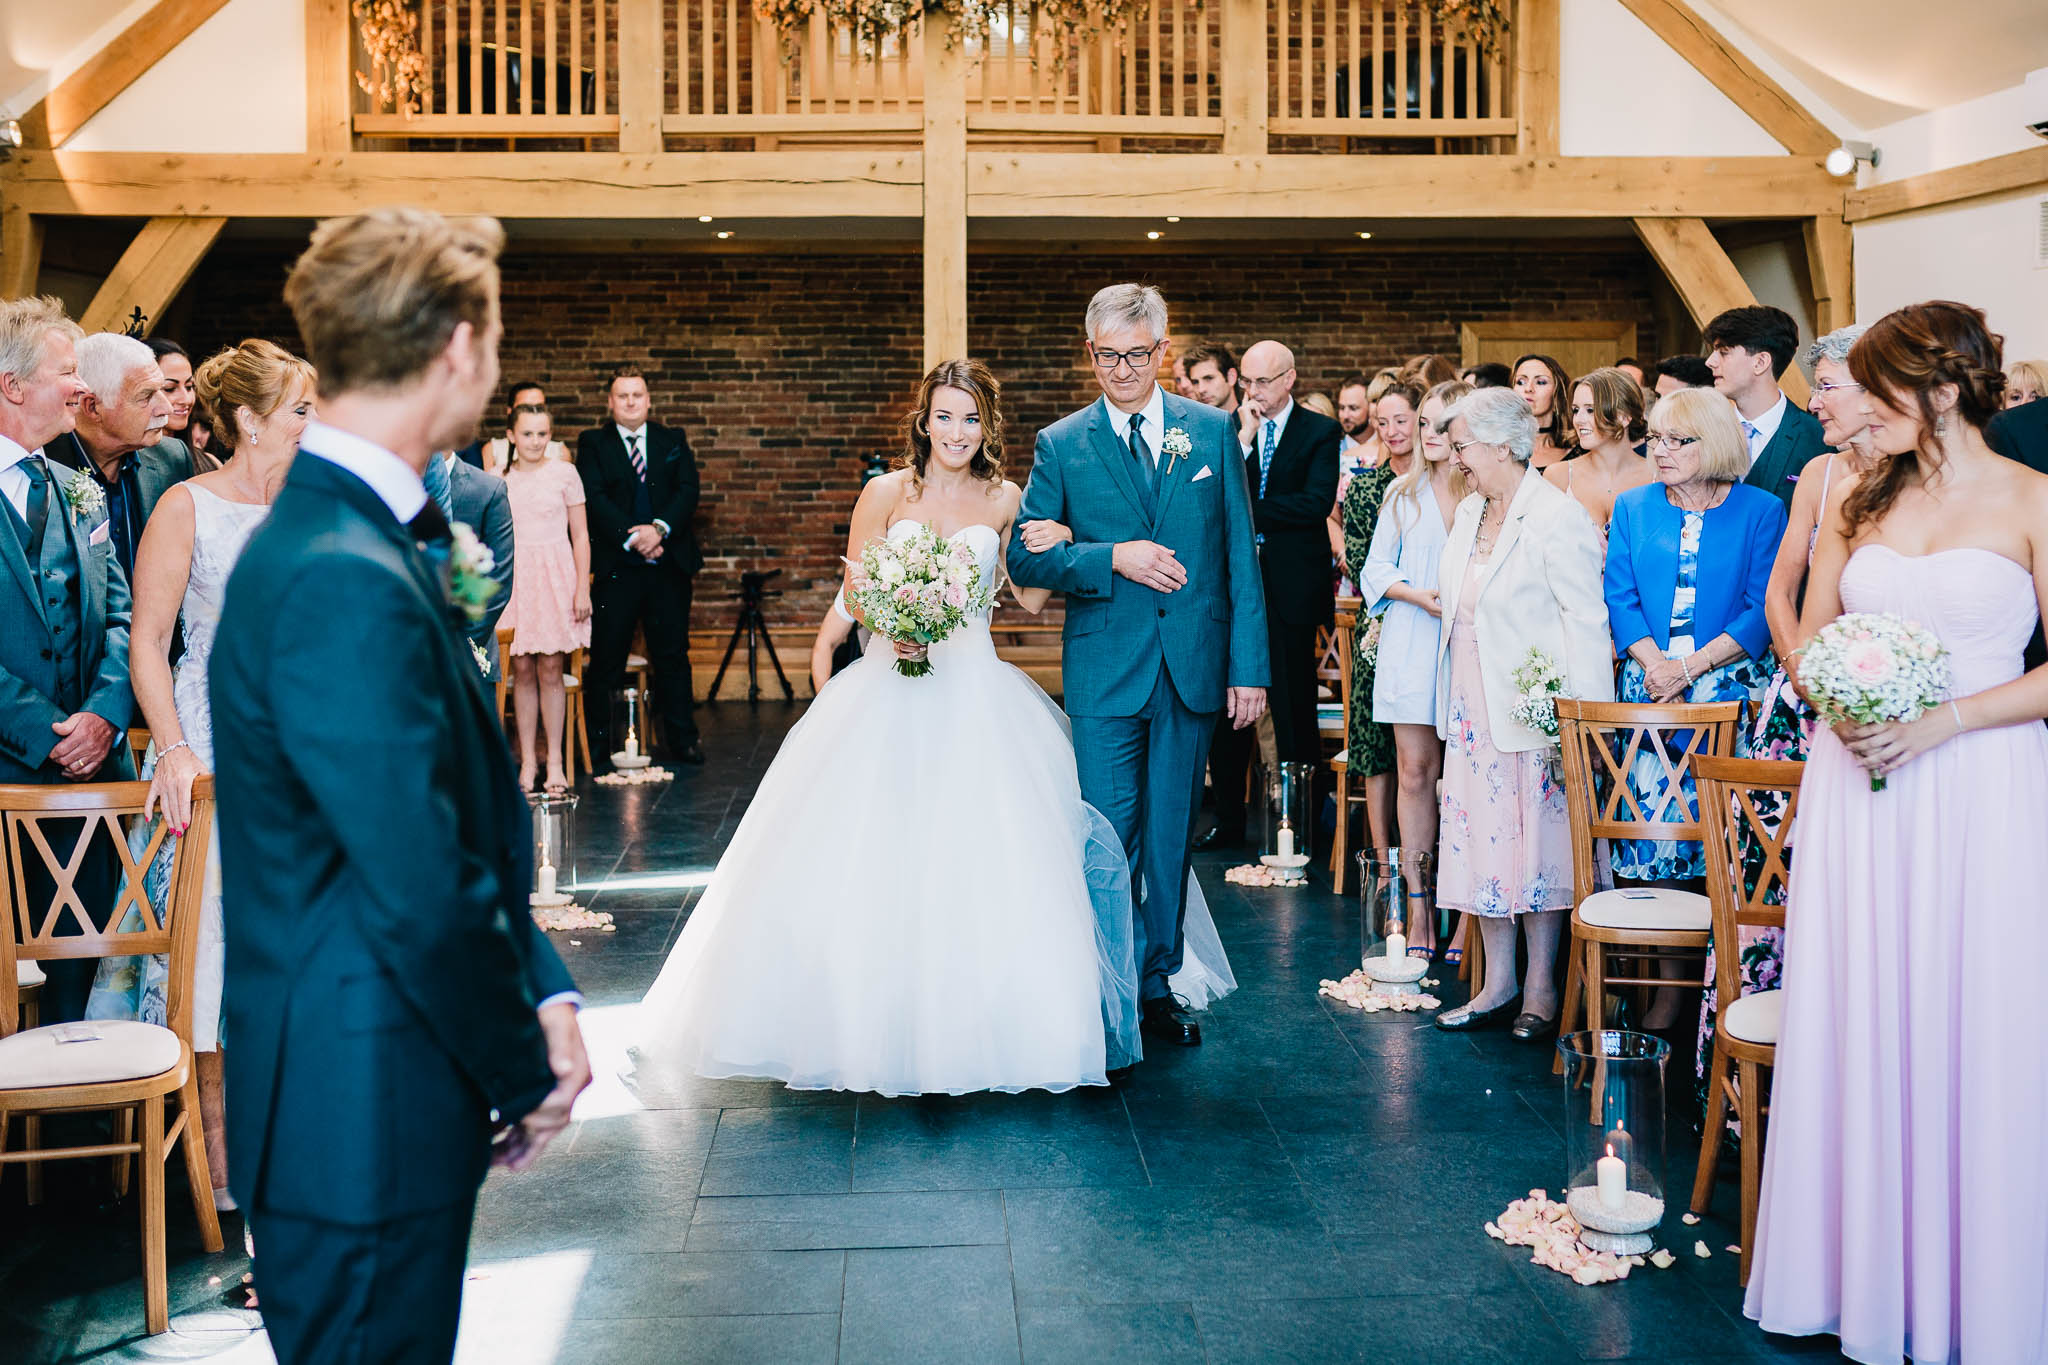 FATHER OF THE BRIDE WITH DAUGHTER WALKING DOWN THE ISLE